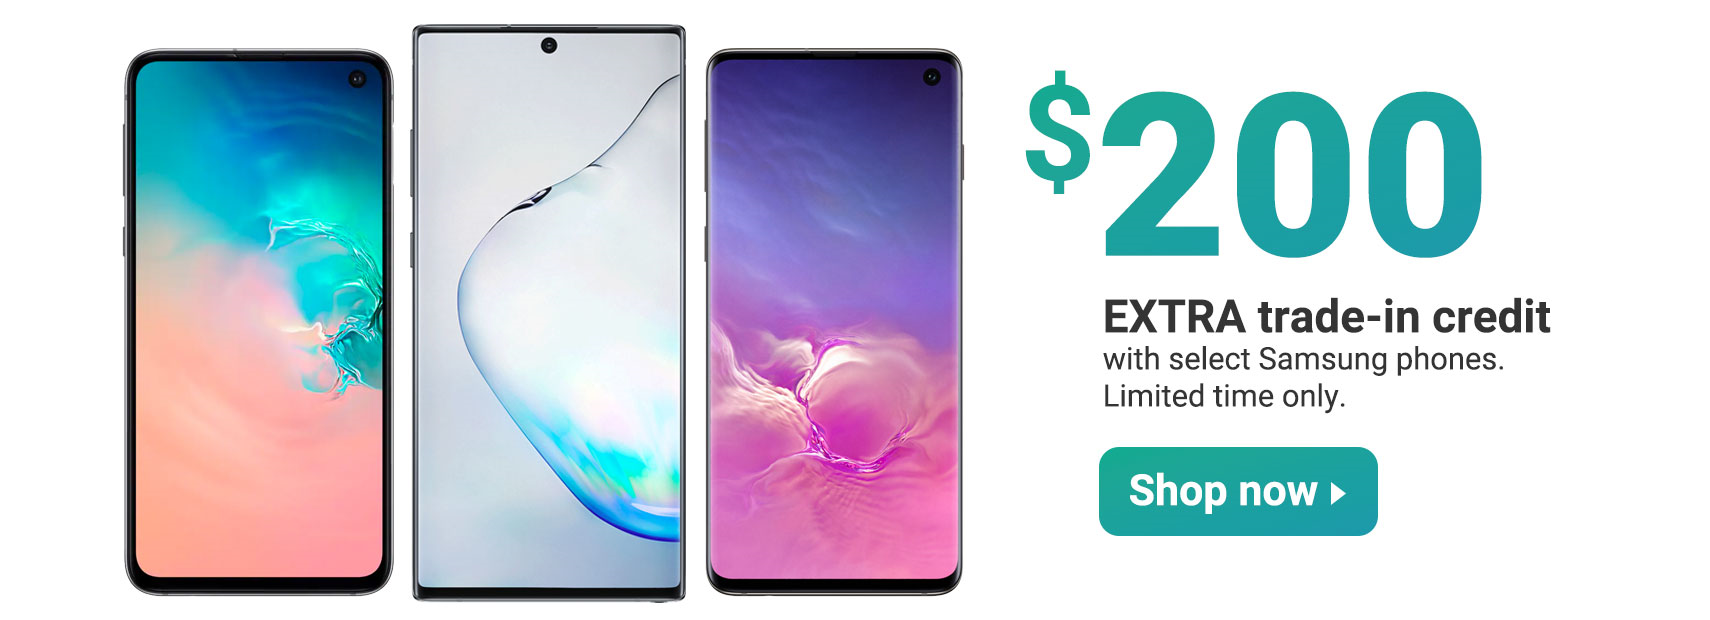 $200 extra trade-in credit with select Samsung phones